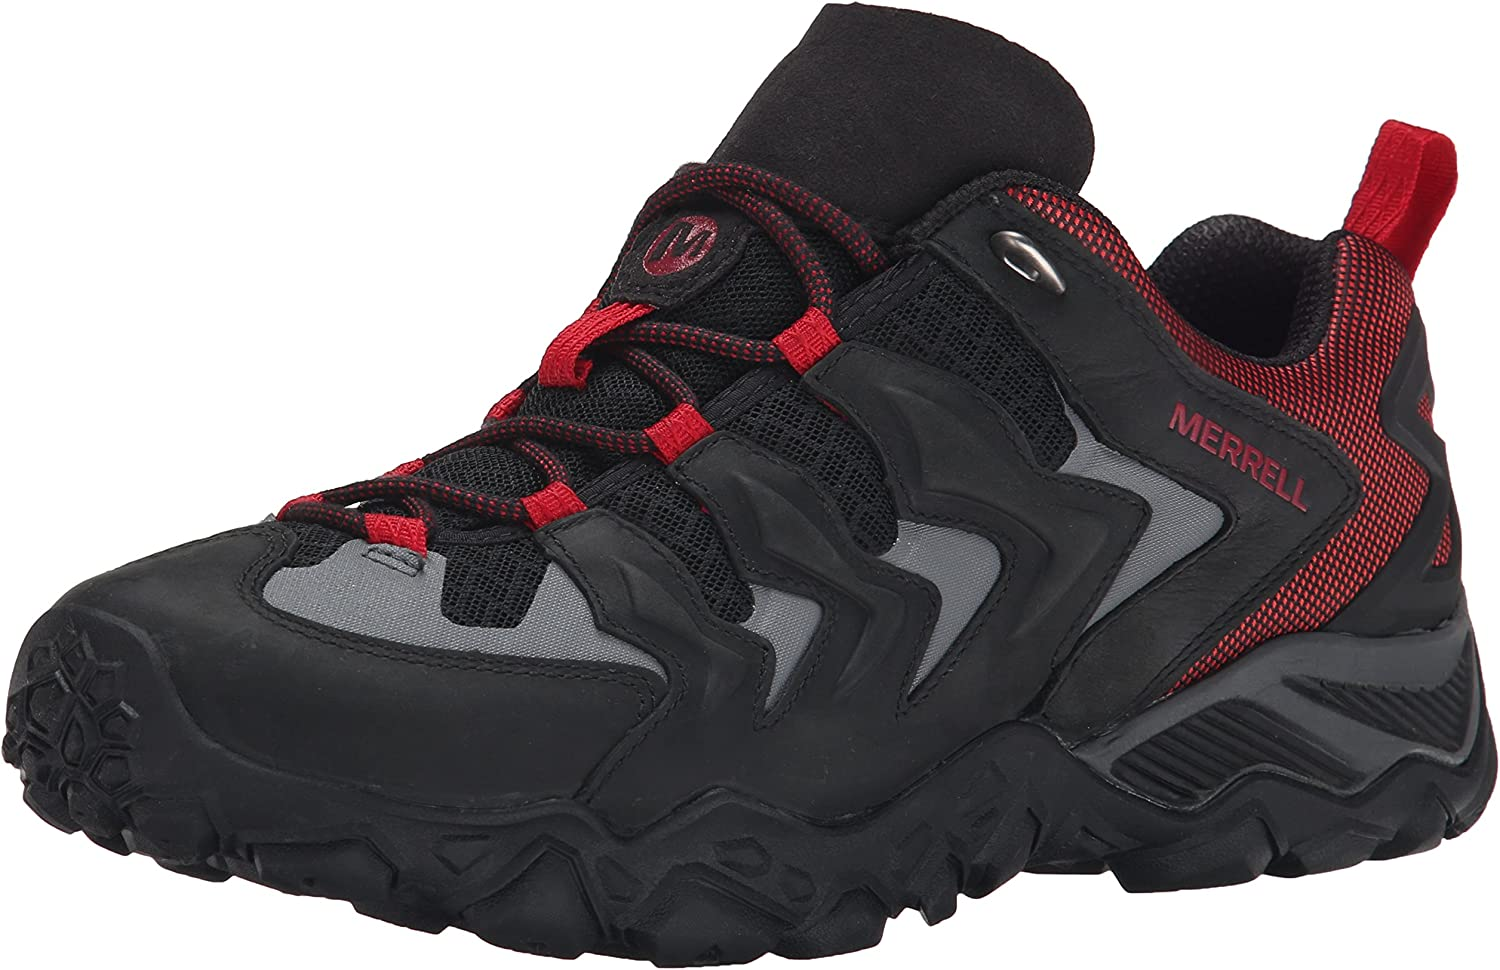 Merrell Chameleon Shift Ventilator, Men's Lace-Up Trekking and Hiking shoes